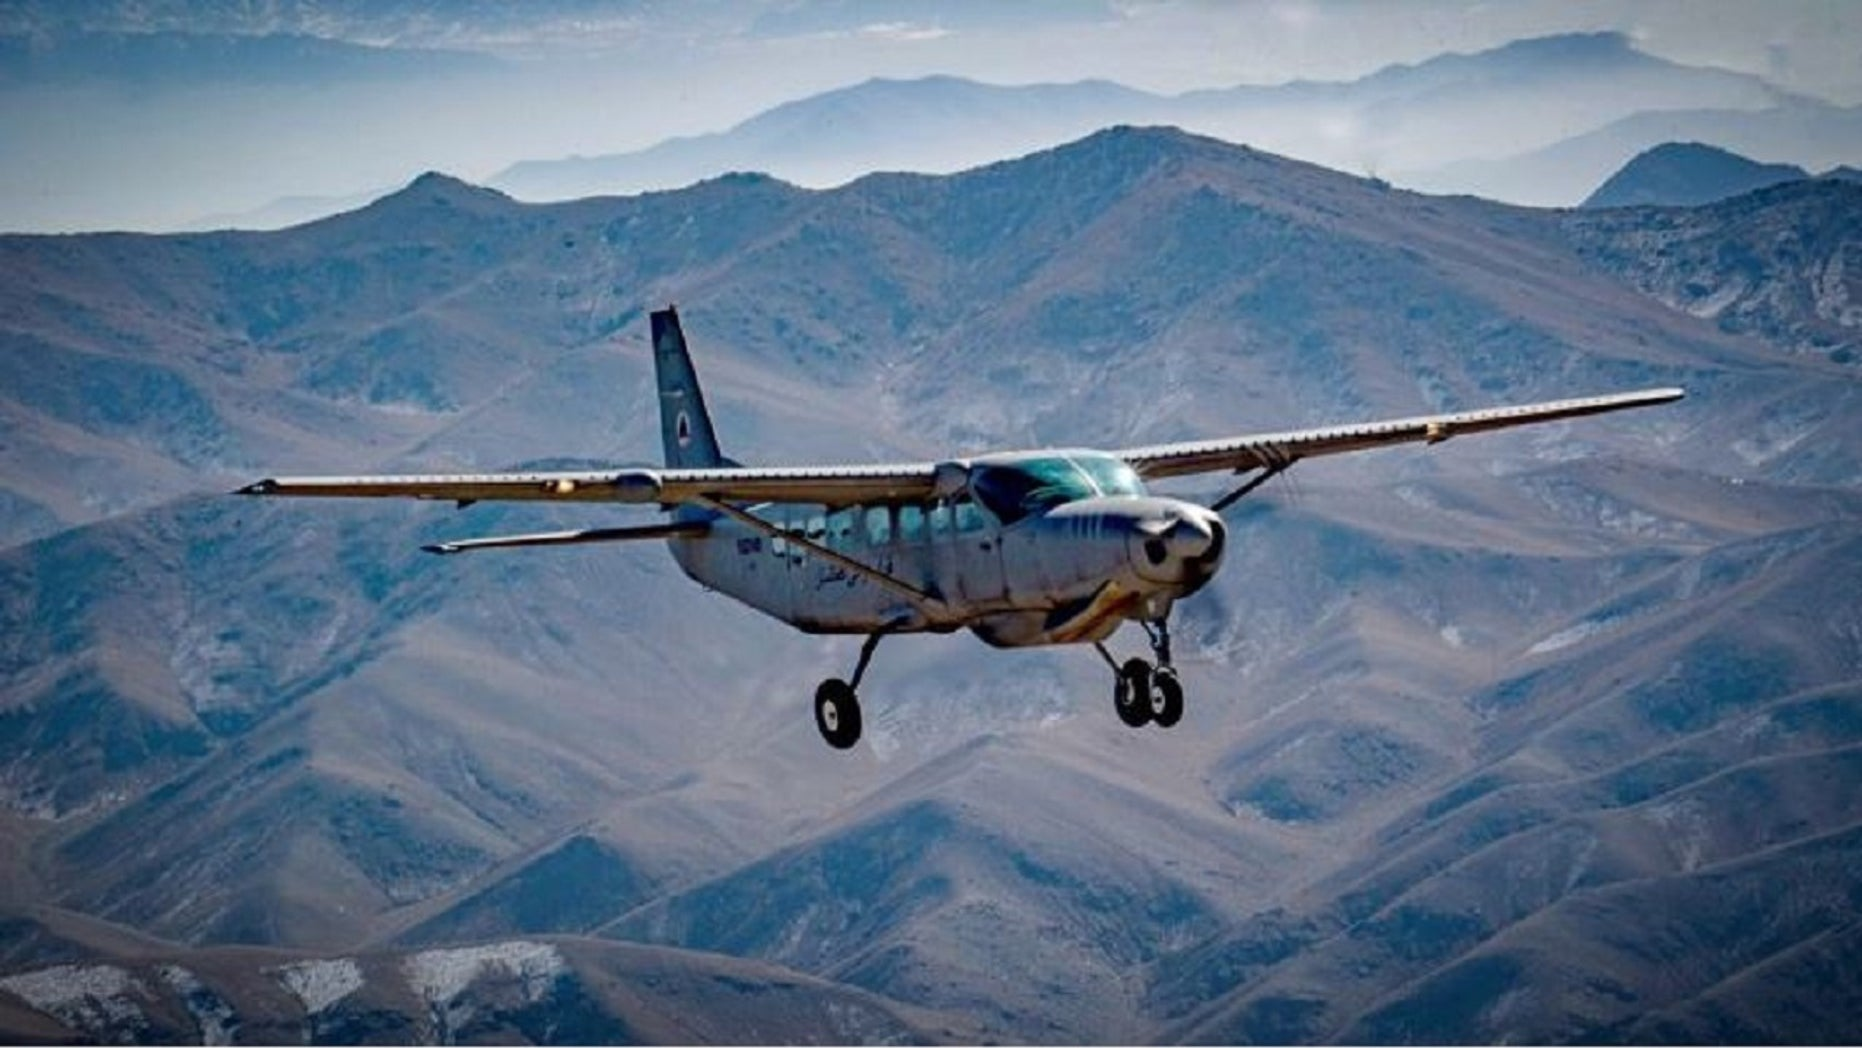 Westlake Legal Group Afghan-pilots US.-based Afghan pilot training program ends after nearly half of pilots go AWOL Louis Casiano fox-news/world/conflicts/afghanistan fox-news/us/military fox news fnc/us fnc article 1c4e4ab7-695d-5358-965c-29358cf0798d